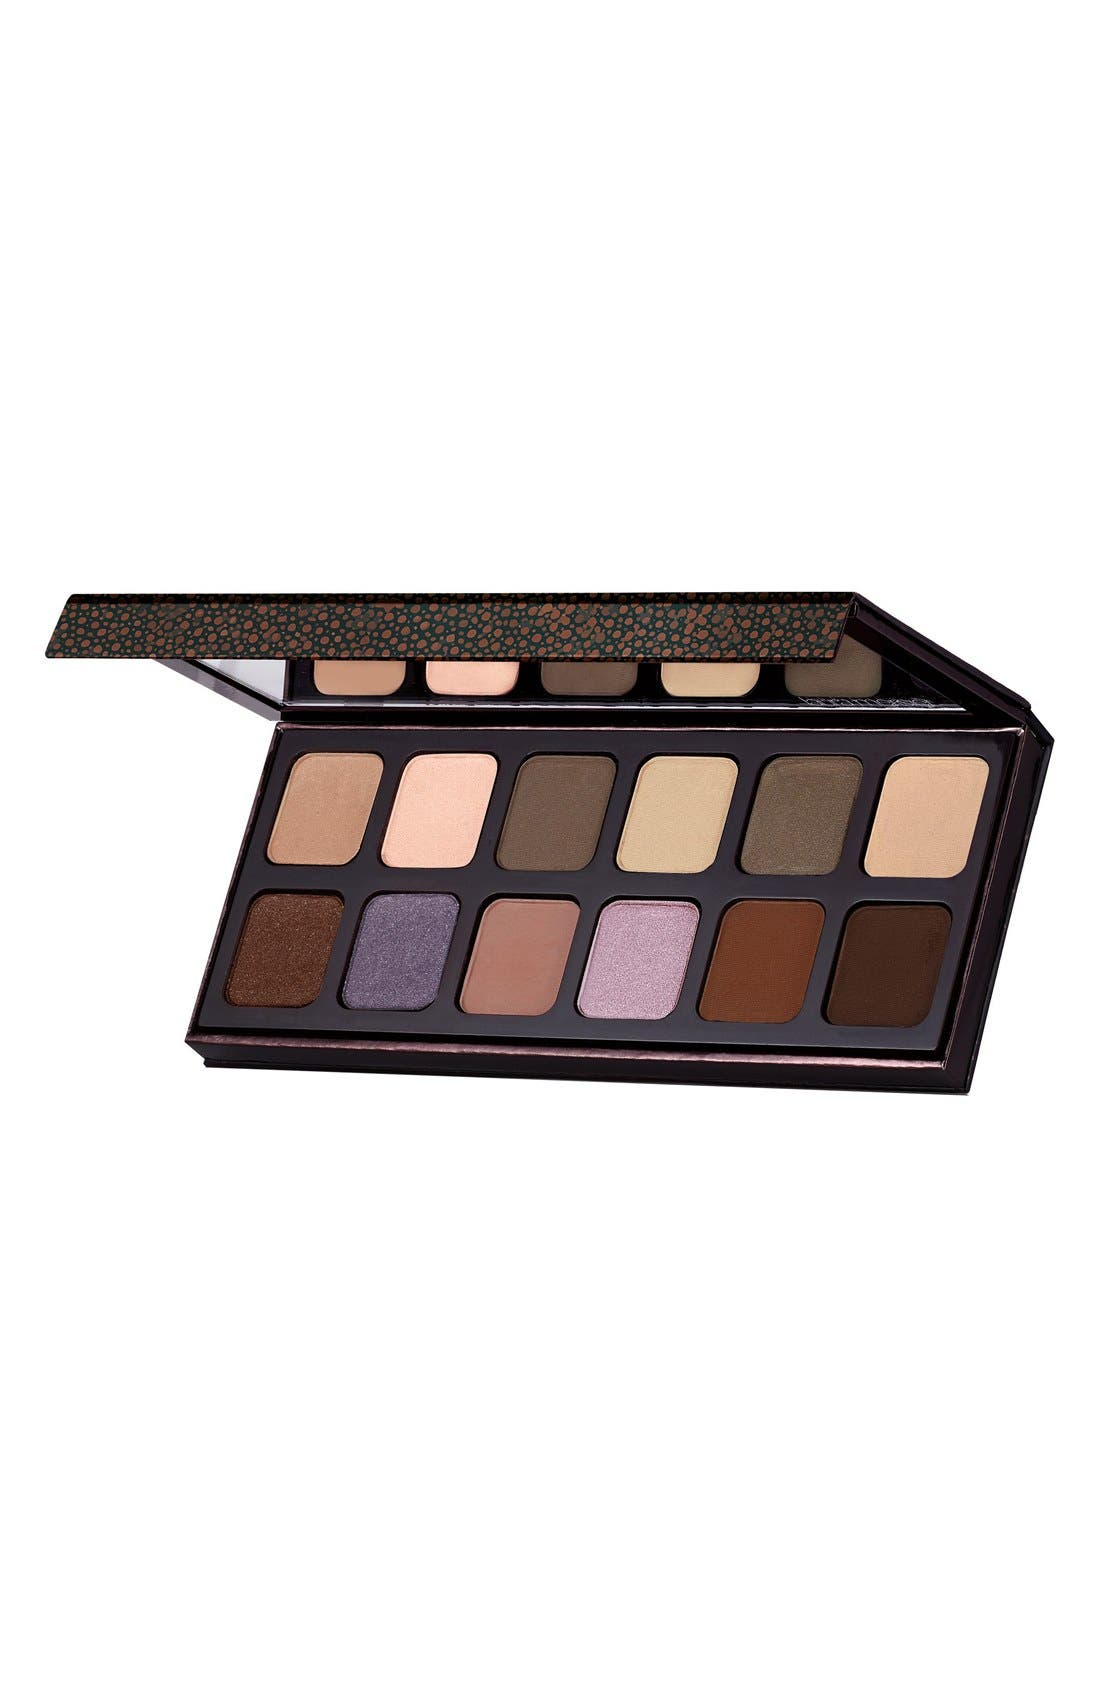 Extreme Neutrals Eyeshadow Palette,                         Main,                         color, NO COLOR